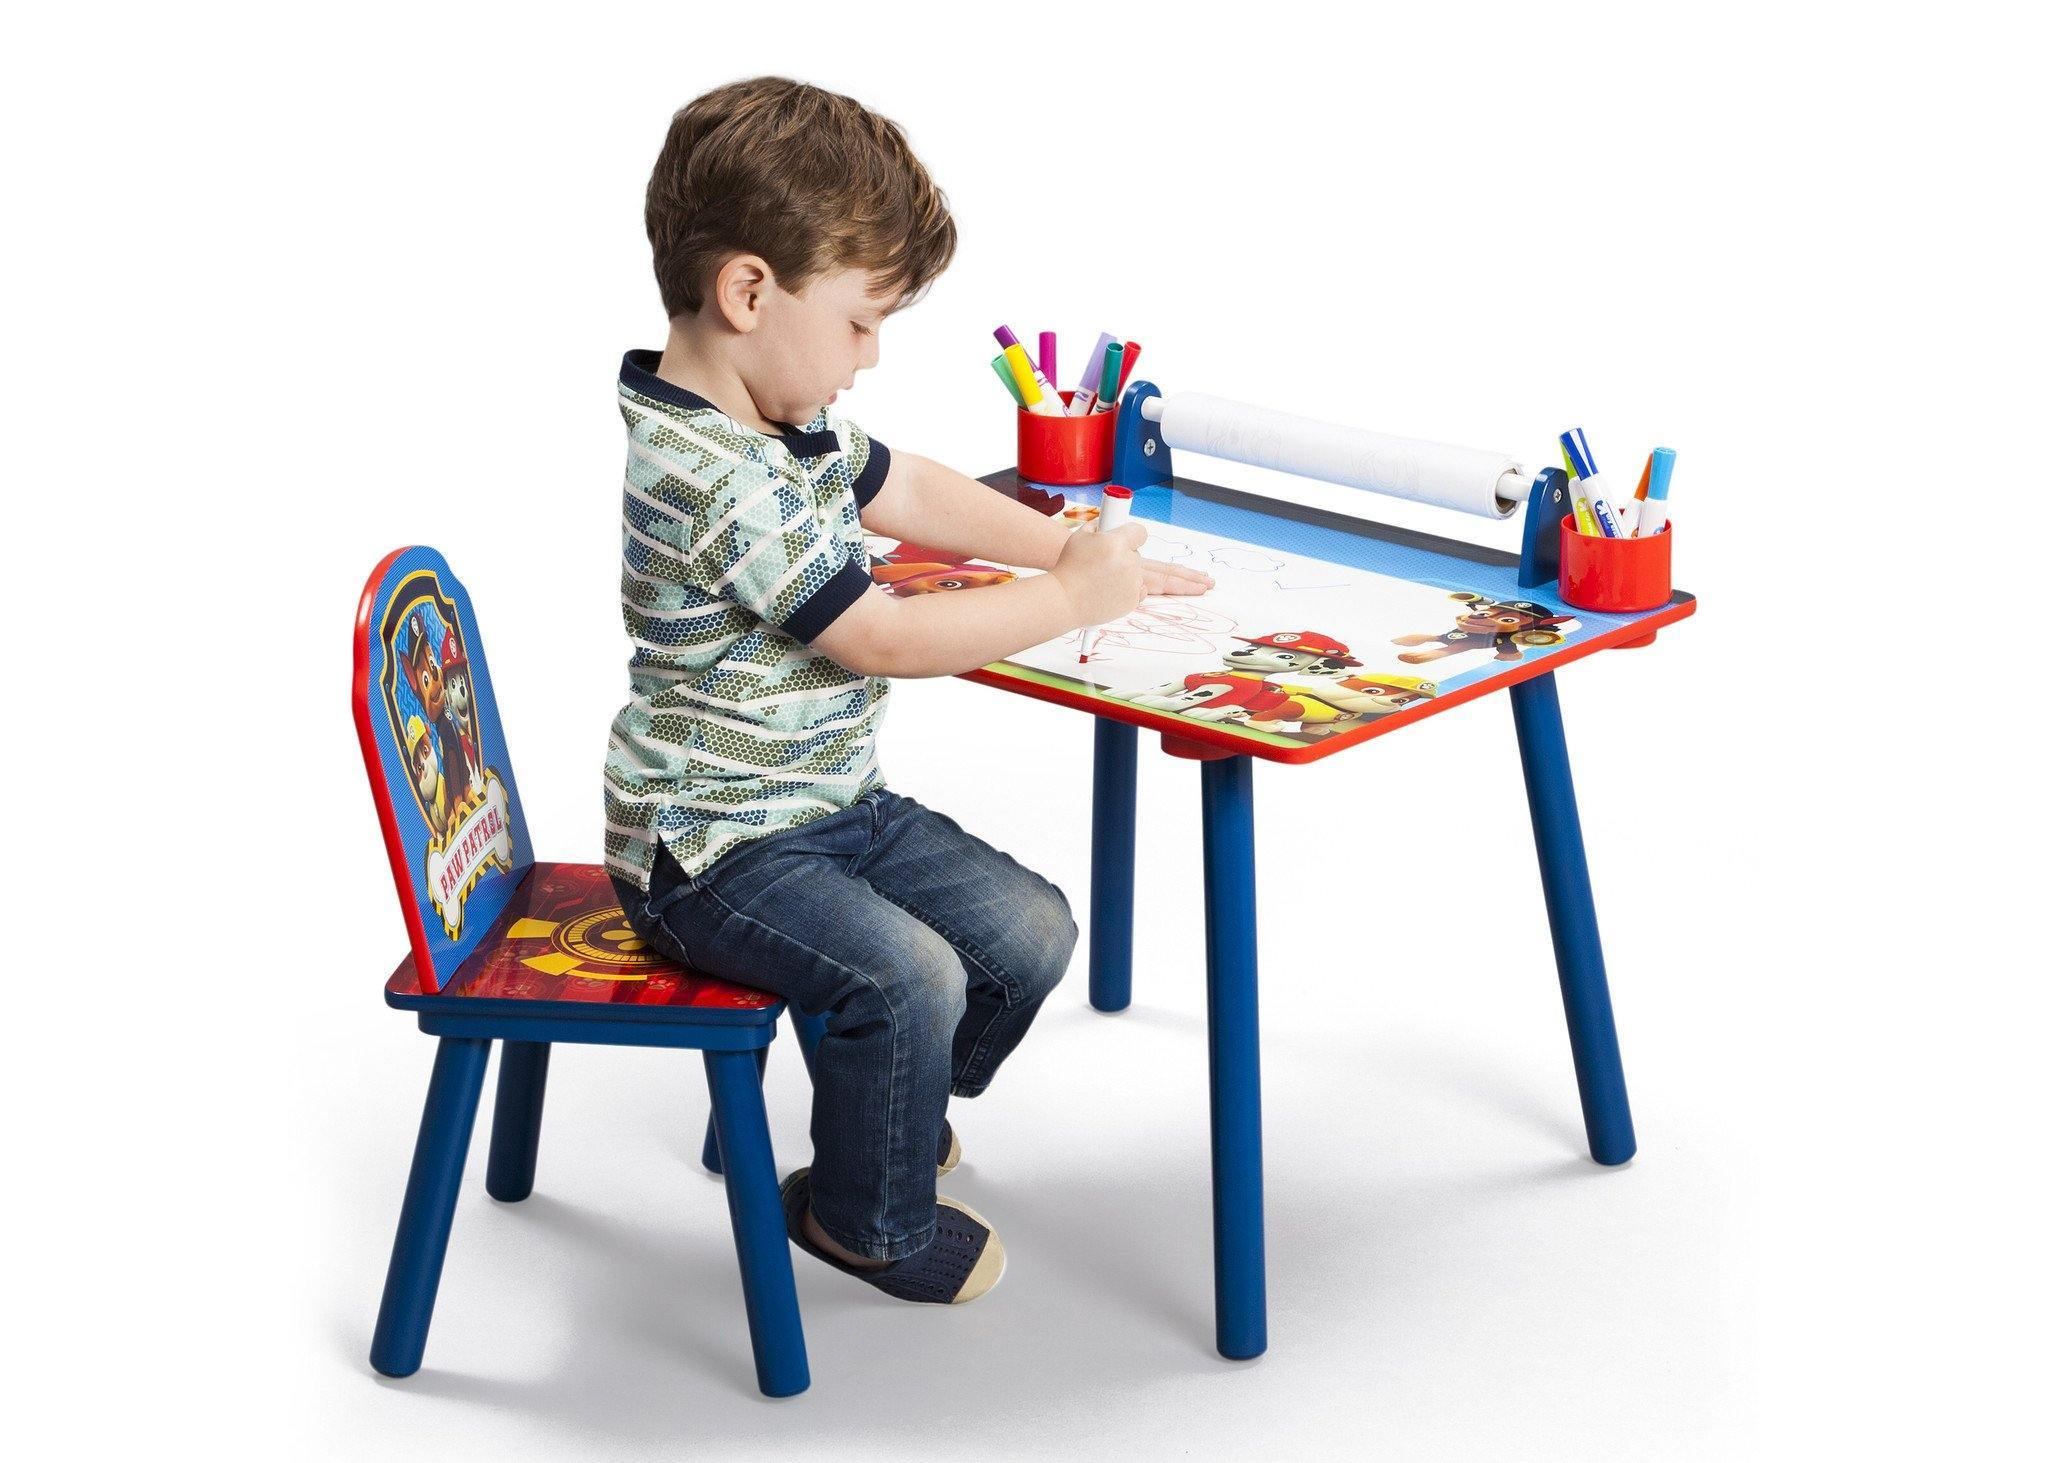 Delta Children PAW Patrol Art Desk, Right View with Props and Model Paw Patrol (1121)